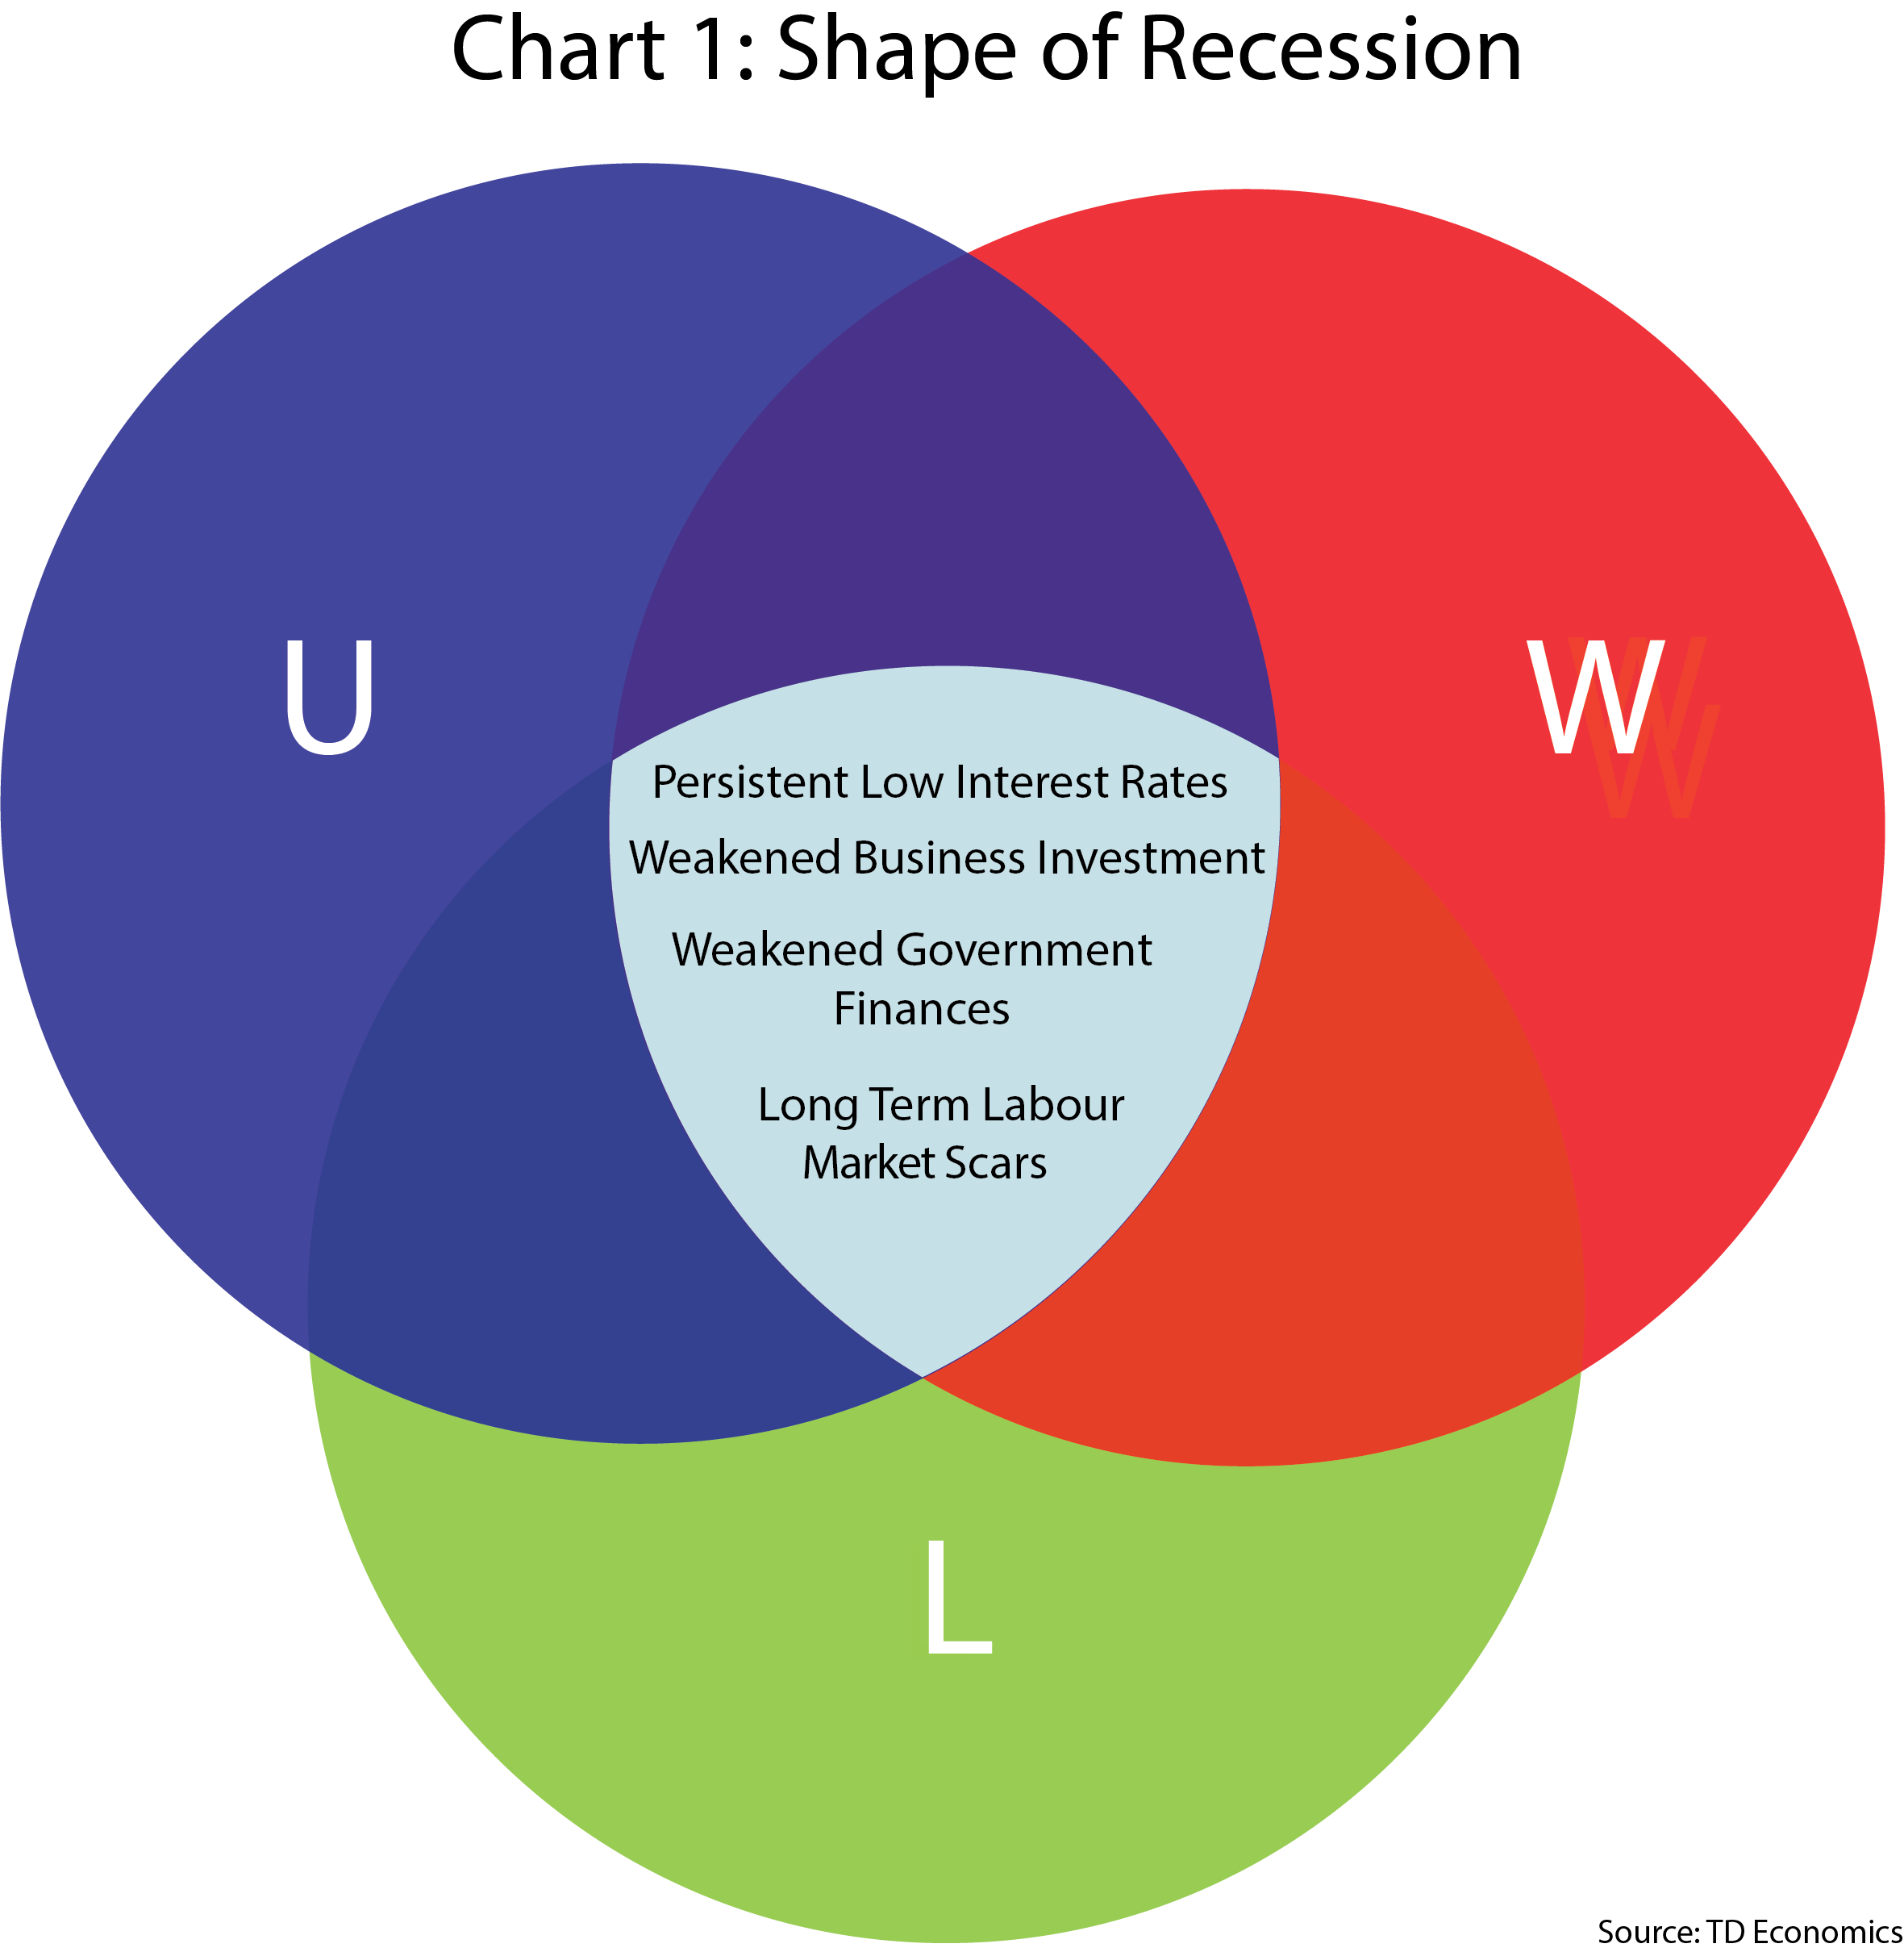 Chart 1: Shape of Recession